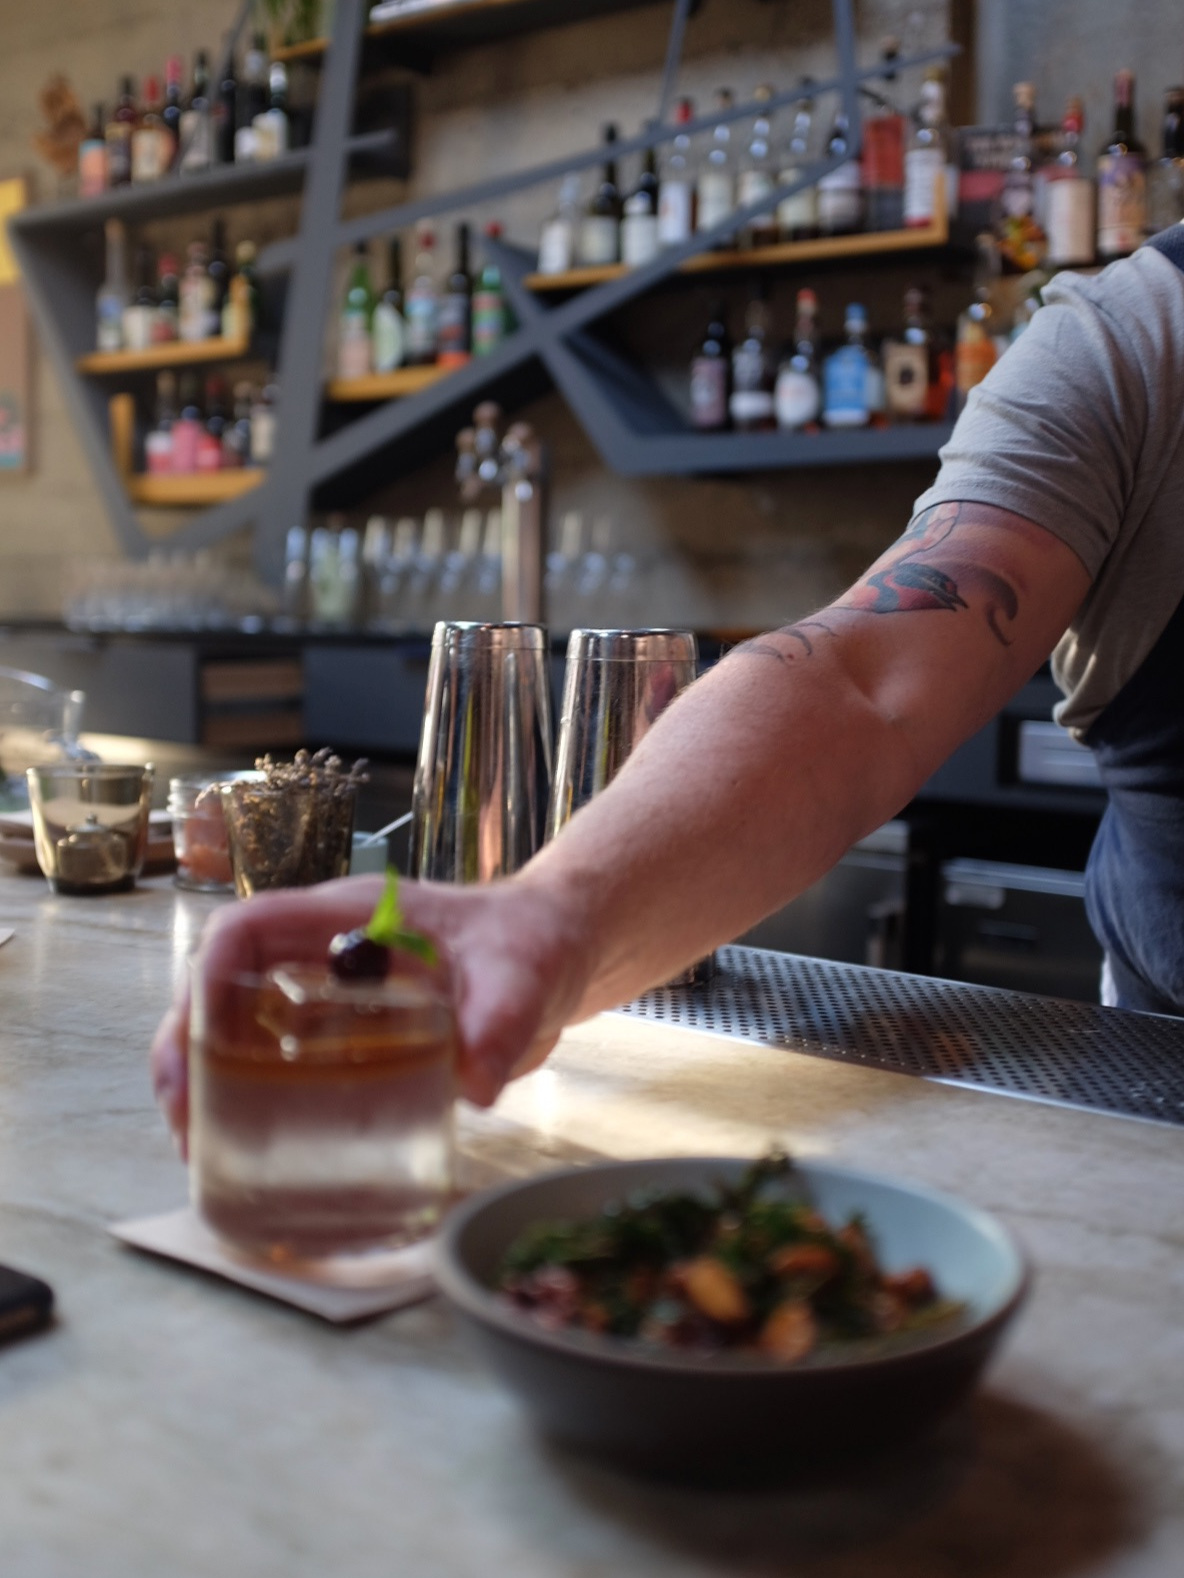 Trade & Media Relations - Mail-merged press releases and traditional desksides are a thing of the past. With a laser focus on relationships with journalists, bartenders, sommeliers and chefs, we engage directly to plug the most enticing story to the right source.